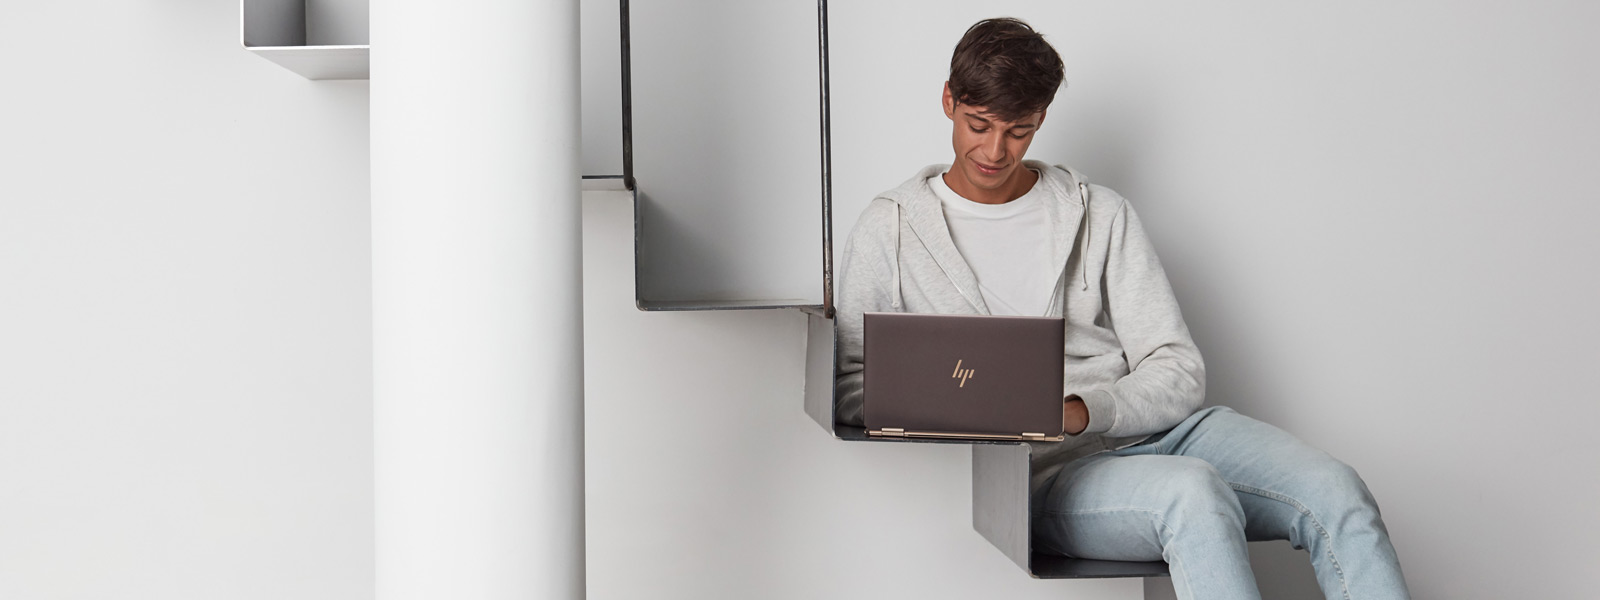 A student sits on stairs while working on a laptop